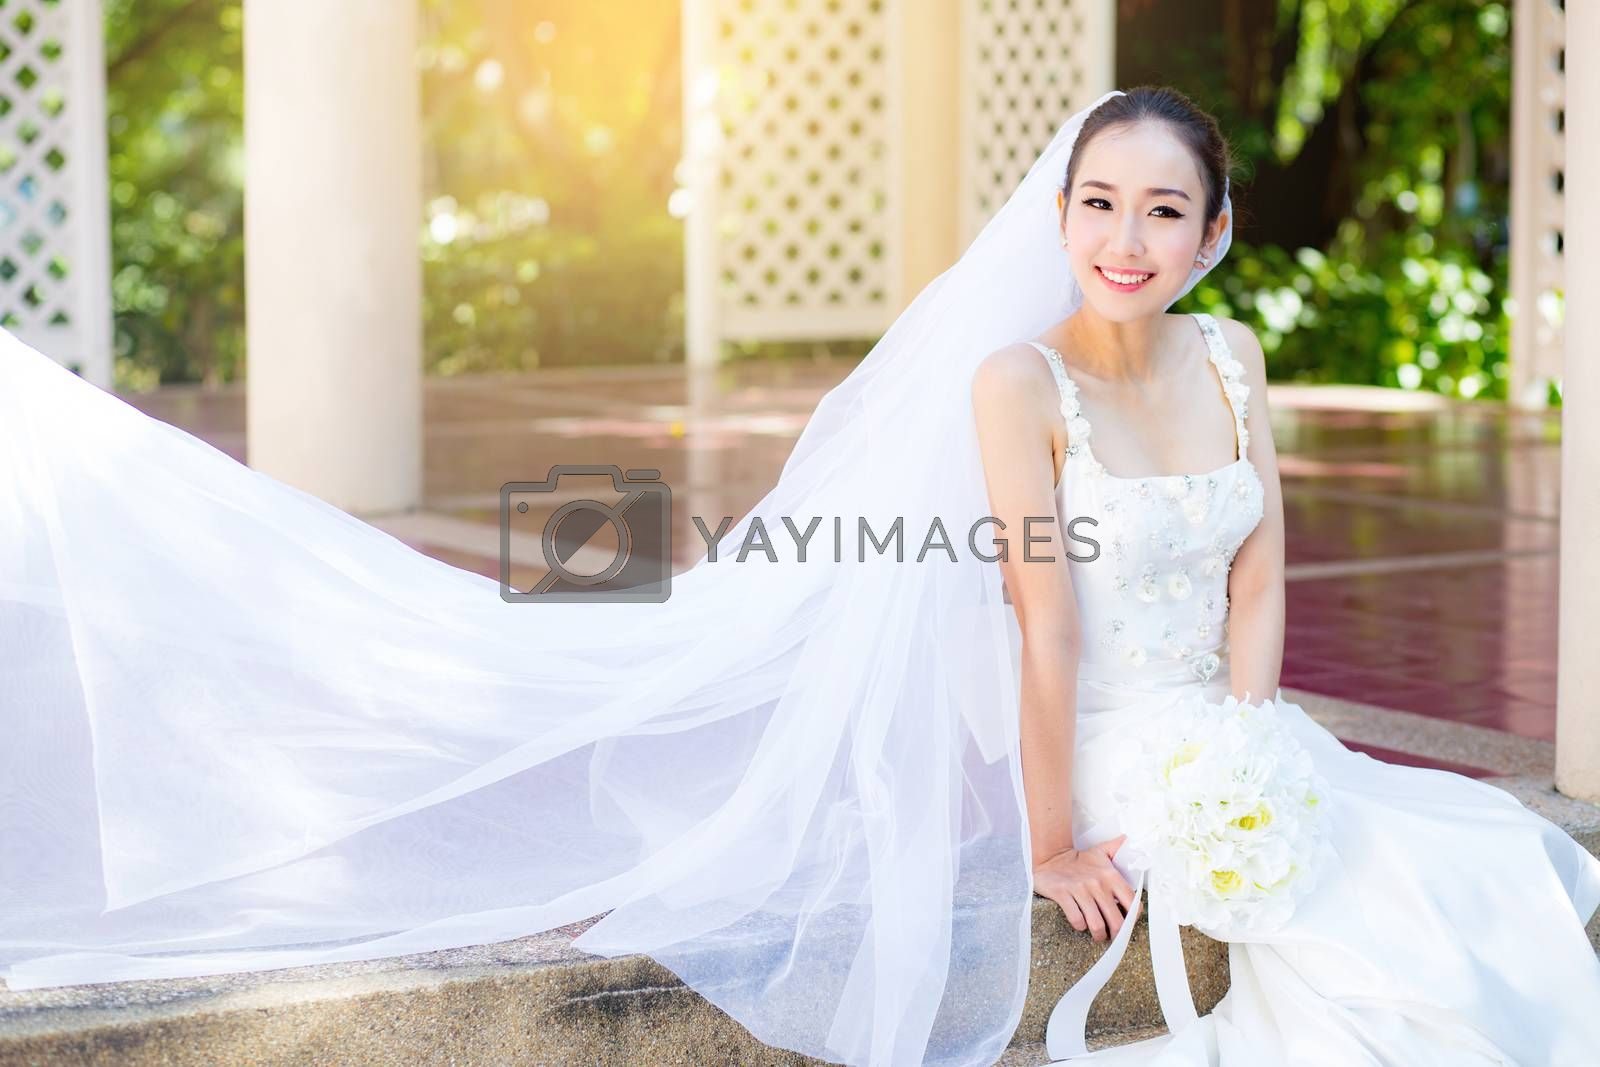 bride is sitting with flowers. Beautiful Young woman posing in park or garden in white bridal dress outdoors on a bright sunny day.